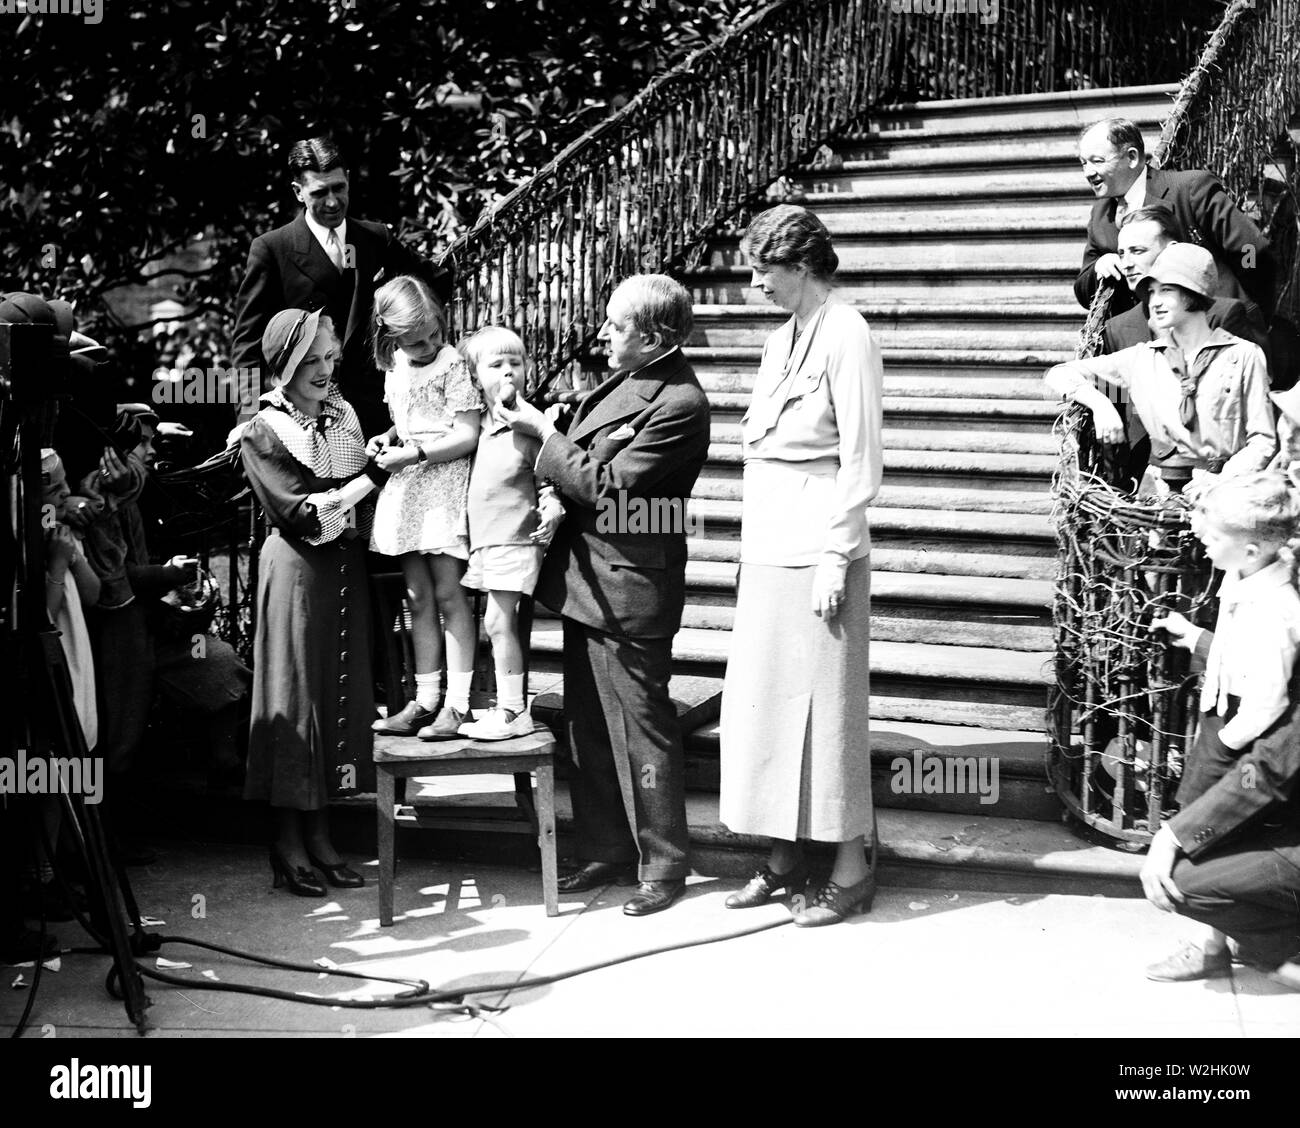 So that's where eggs come from, and howard thurston, professional magician, pulls an easter egg from the mouth of buzzie dall at the white house egg rolling festivals. The group, from the left: jane thurston, daughter of the magician; sistie dall and buzzie, grandchildren of the president; mr. Thurston; and mrs. Roosevelt ca. 1934 Stock Photo